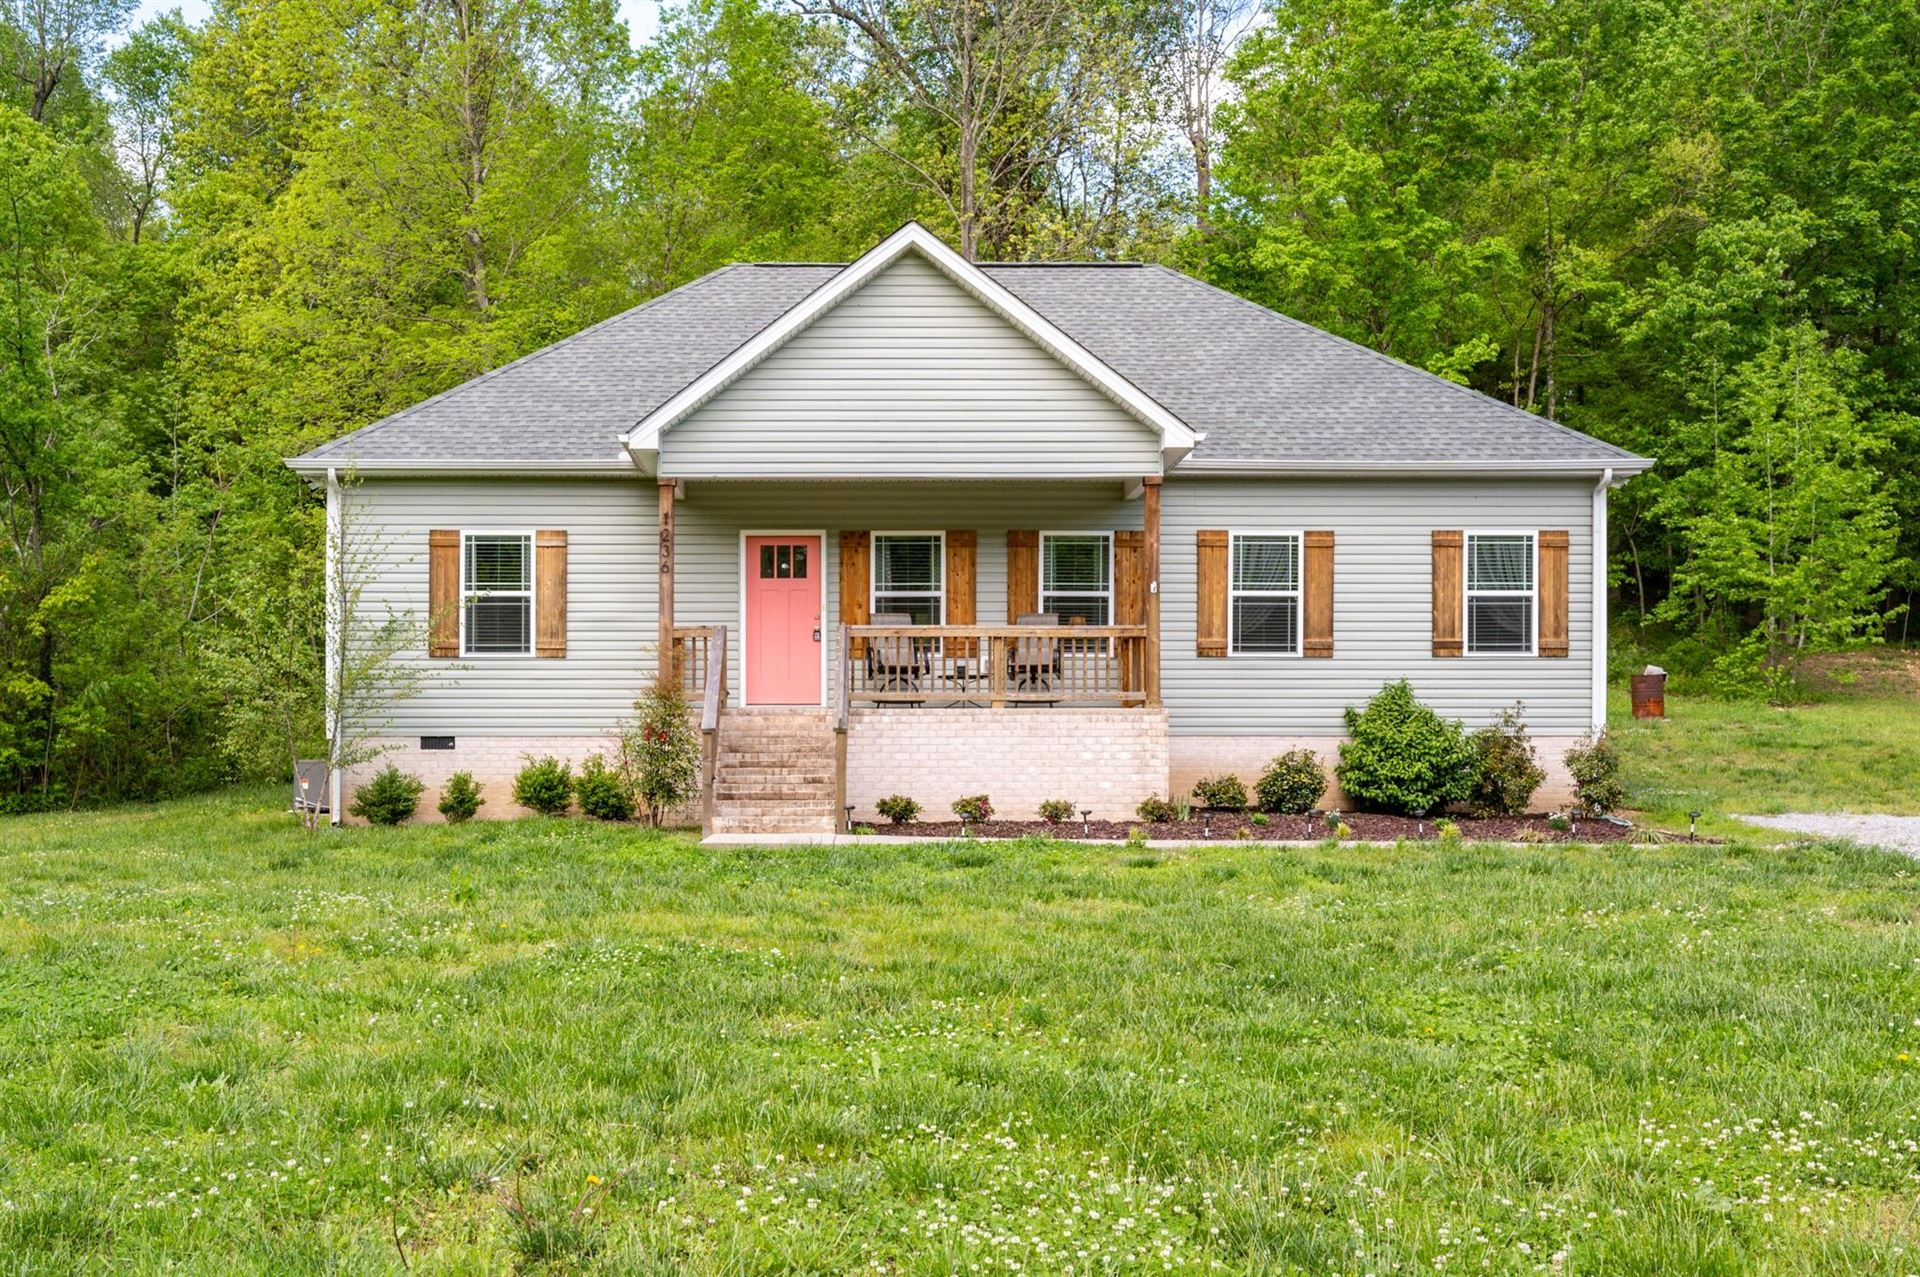 1236 Rogues Fork Rd, Bethpage, TN 37022 - MLS#: 2251048